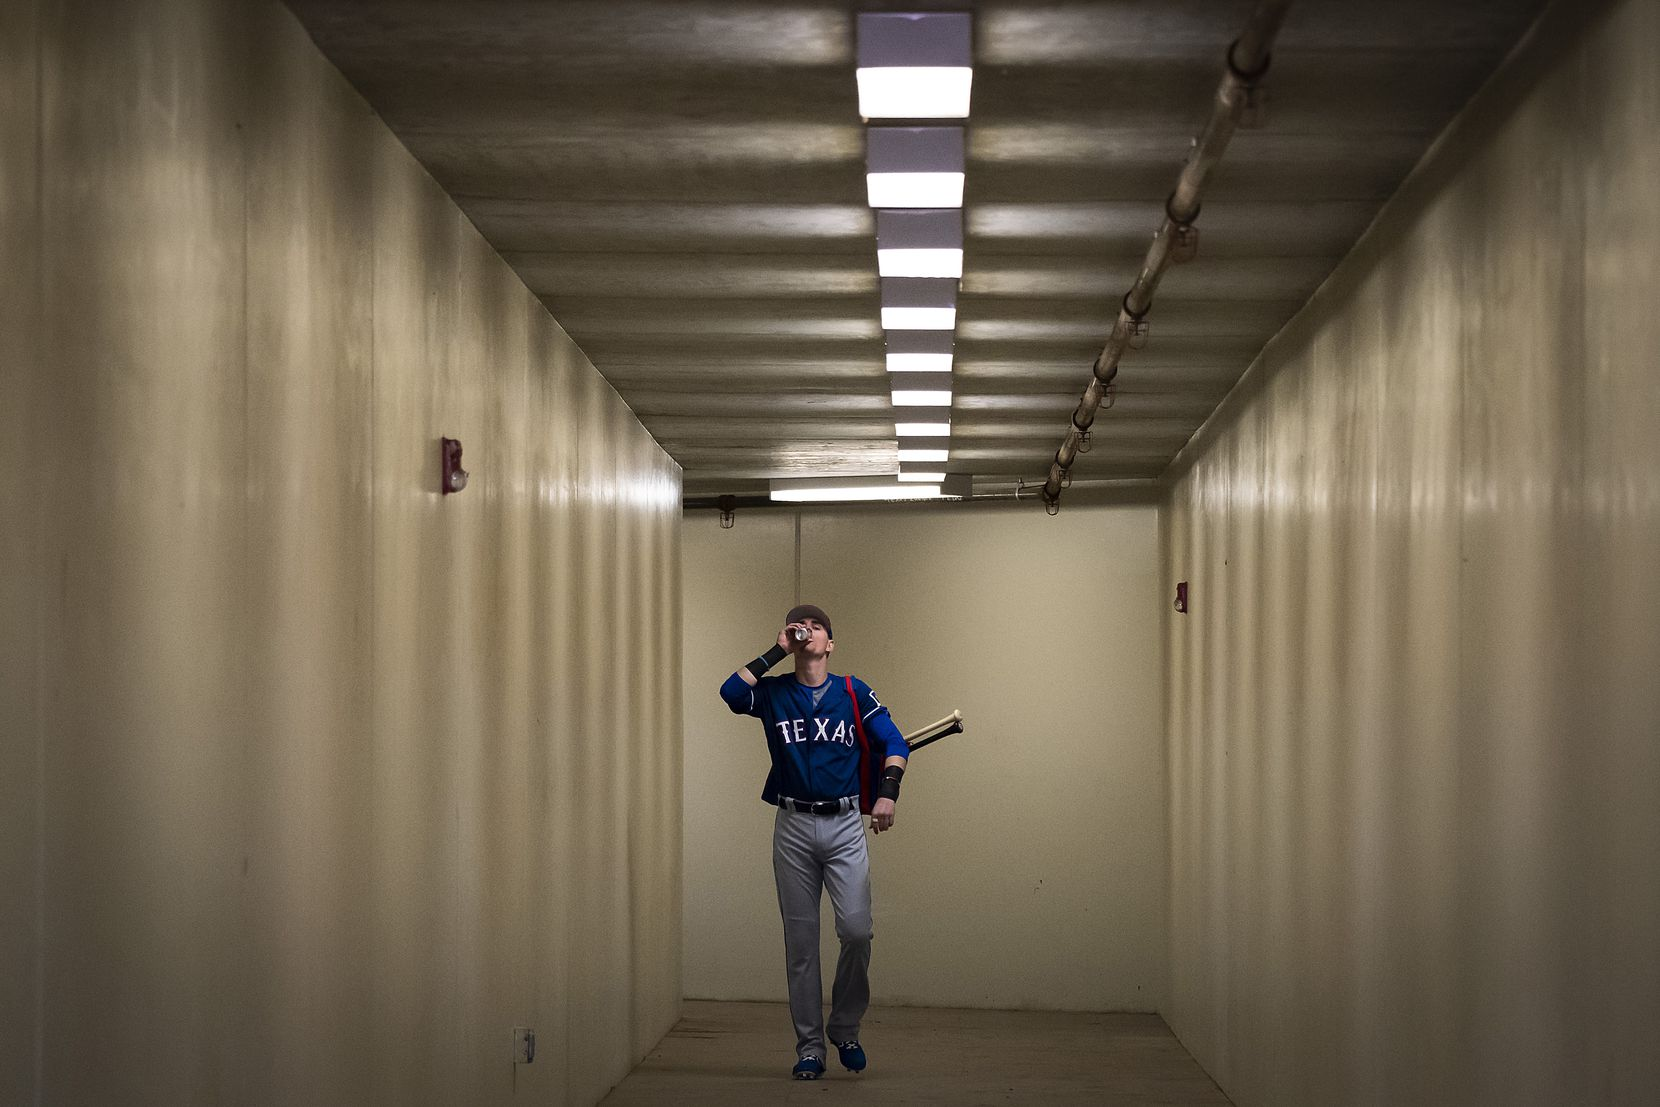 Texas Rangers outfielder Carlos Tocci downs an energy drink as he walks from the clubhouse to the stadium for the team's first spring training game against the Kansas City Royals on Feb. 23 at Surprise Stadium in Surprise, Ariz.